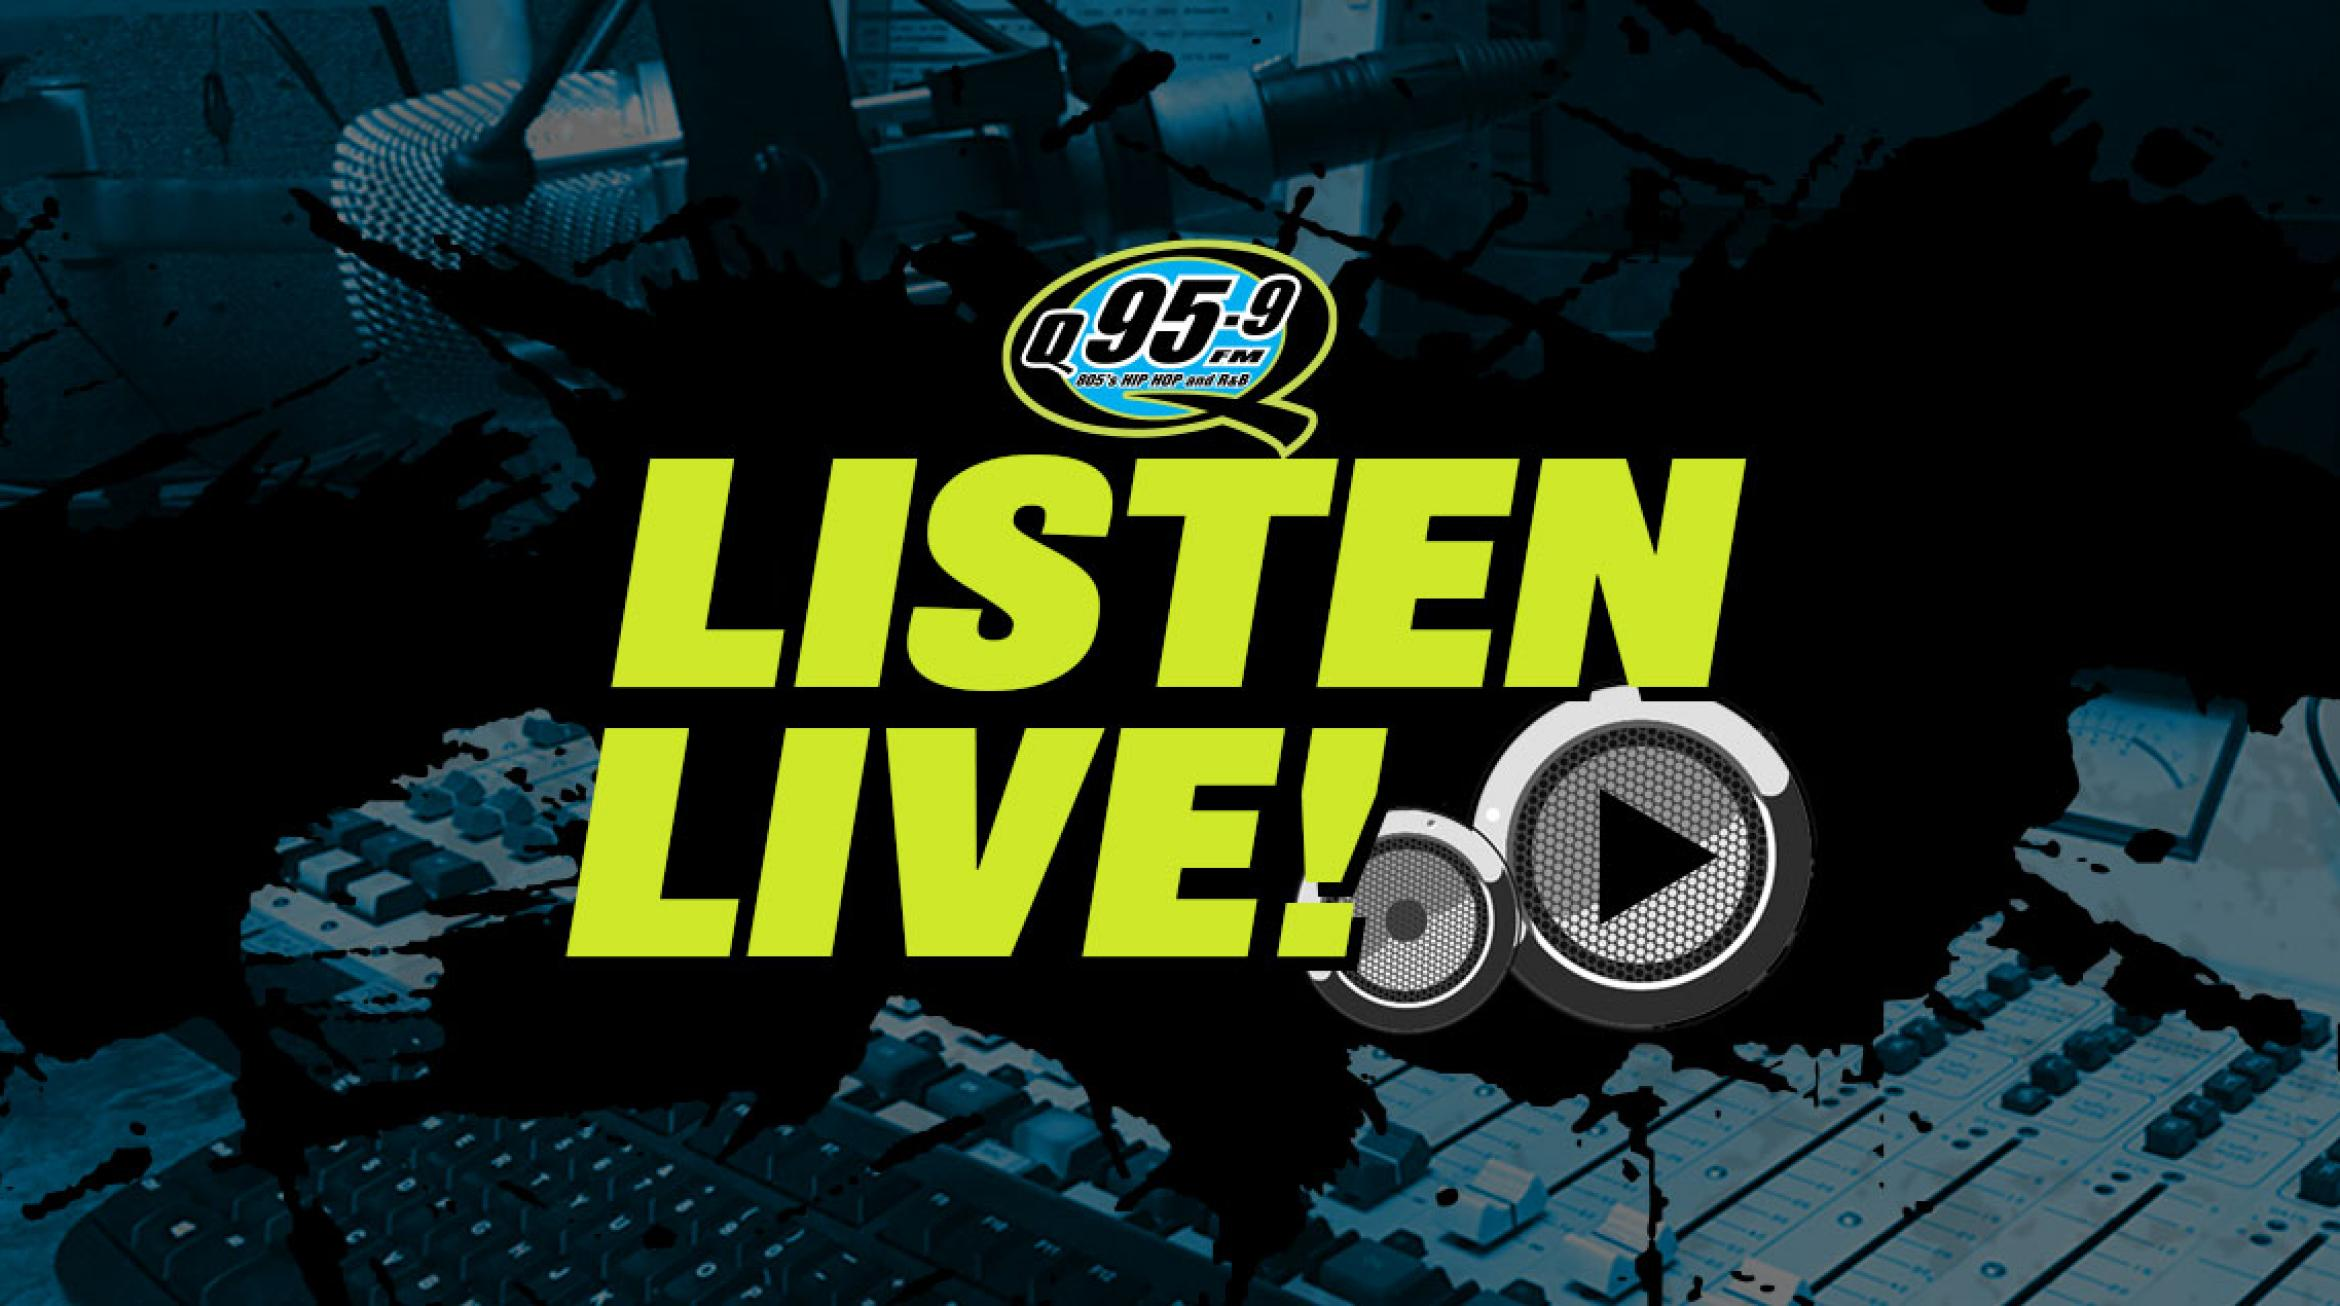 1140x635 ListenLive Q959